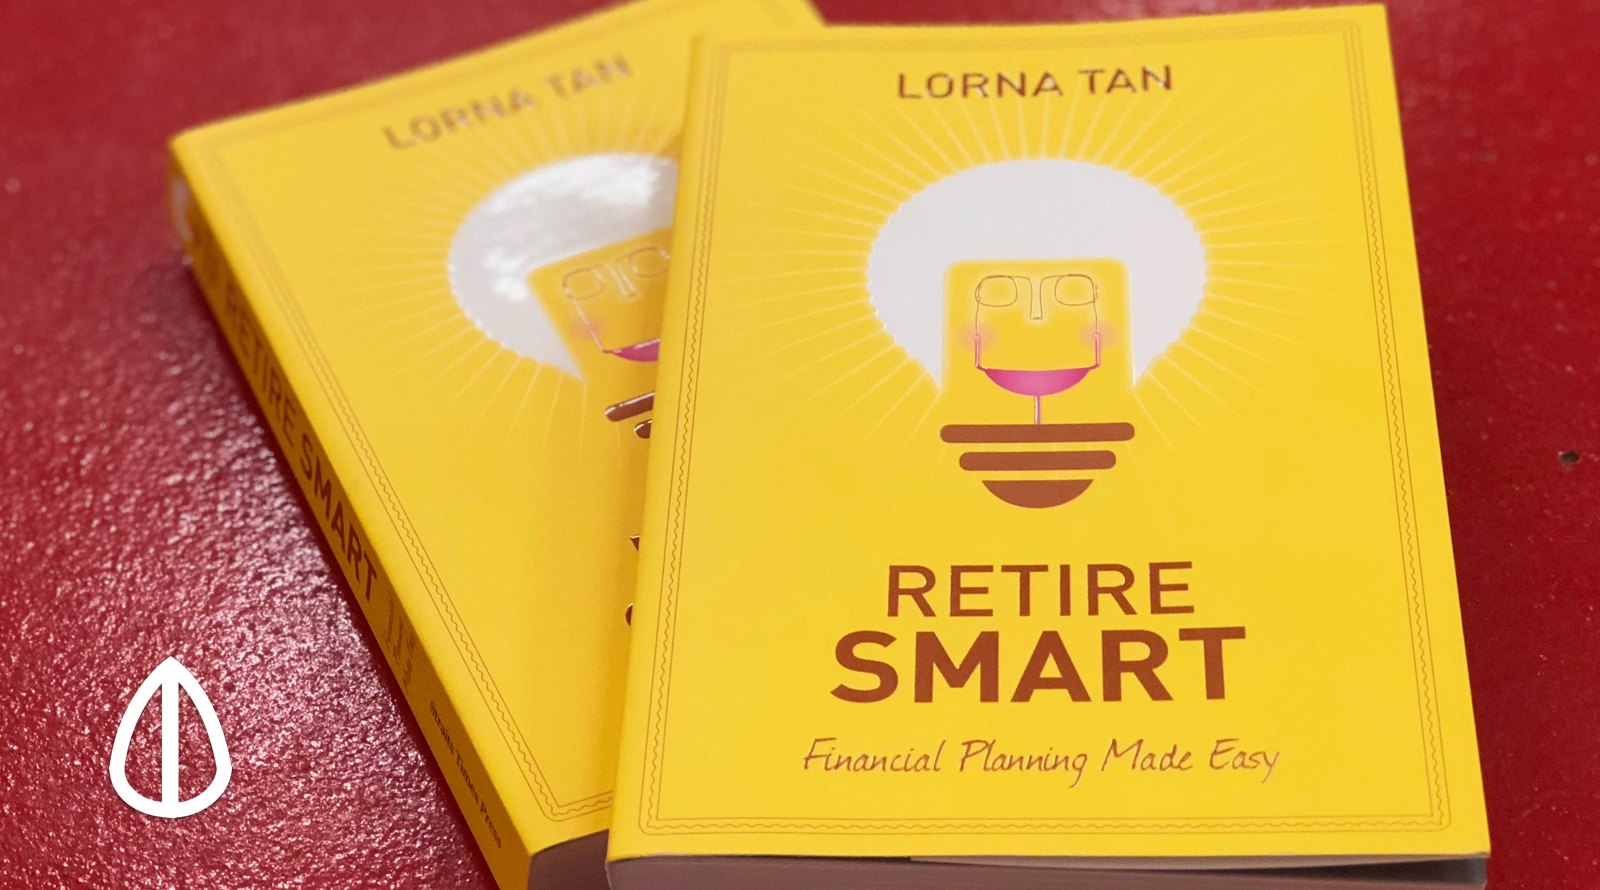 Retire Smart Singapore by Lorna Tan Seedly